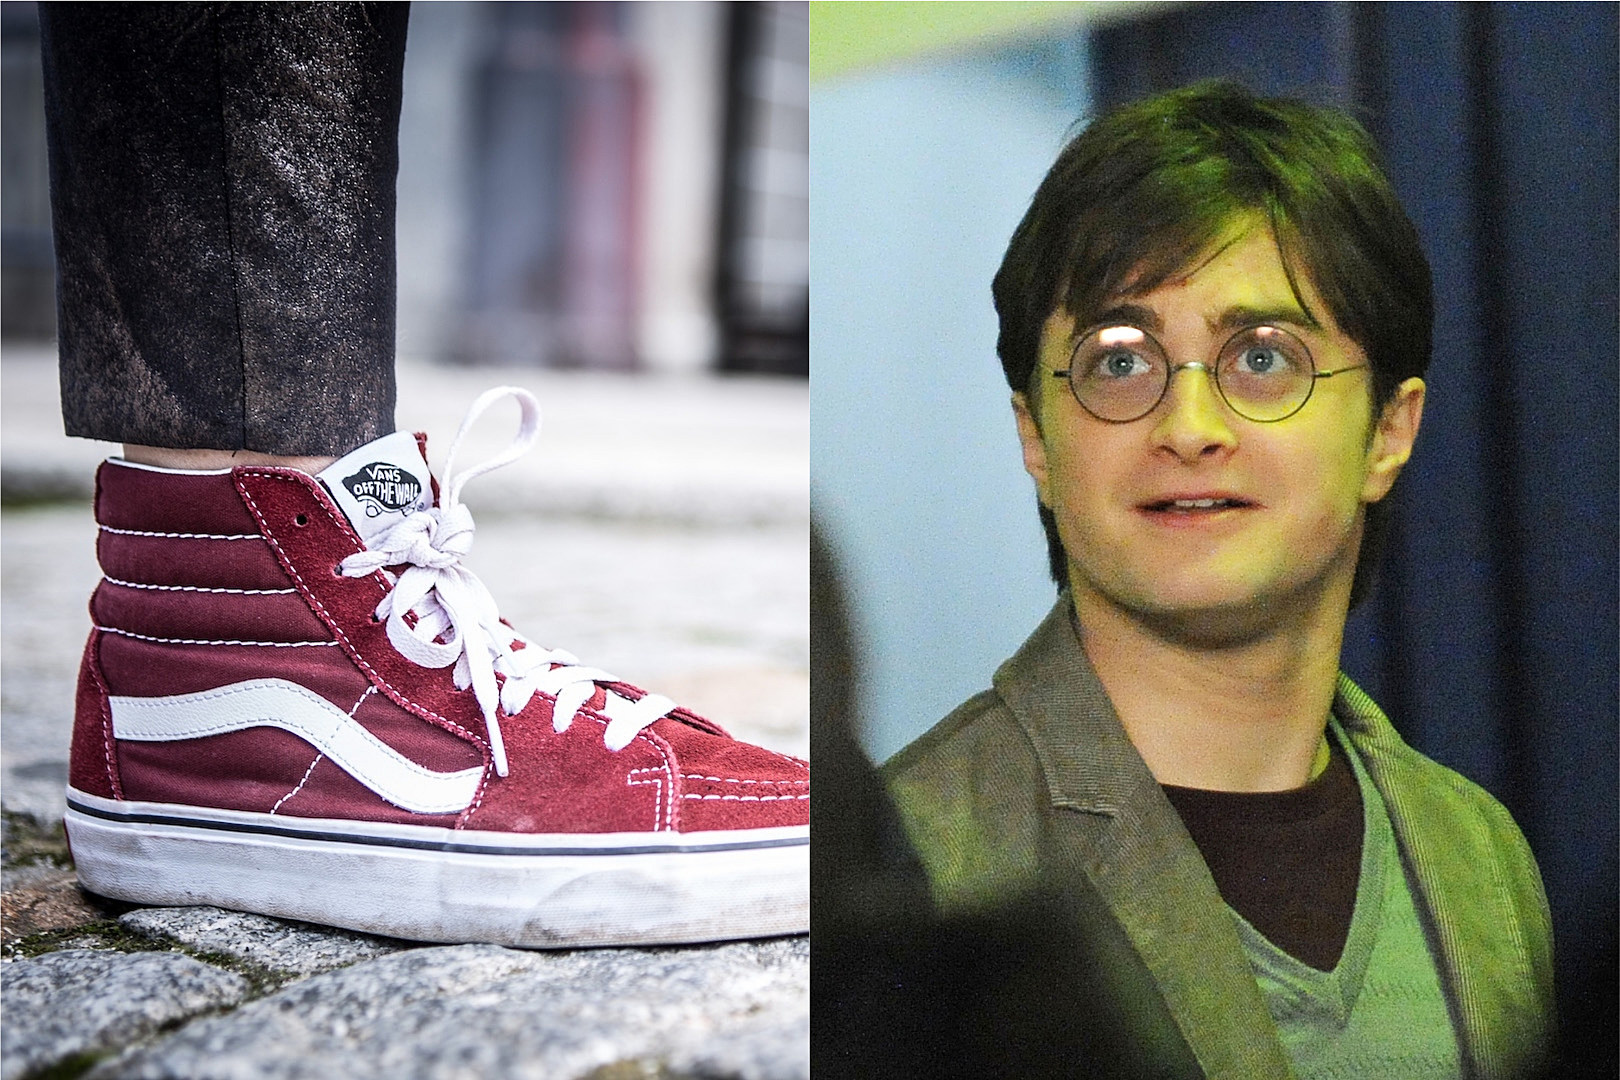 A 'Harry Potter' Collaboration with Vans Shoes Is Coming Soon